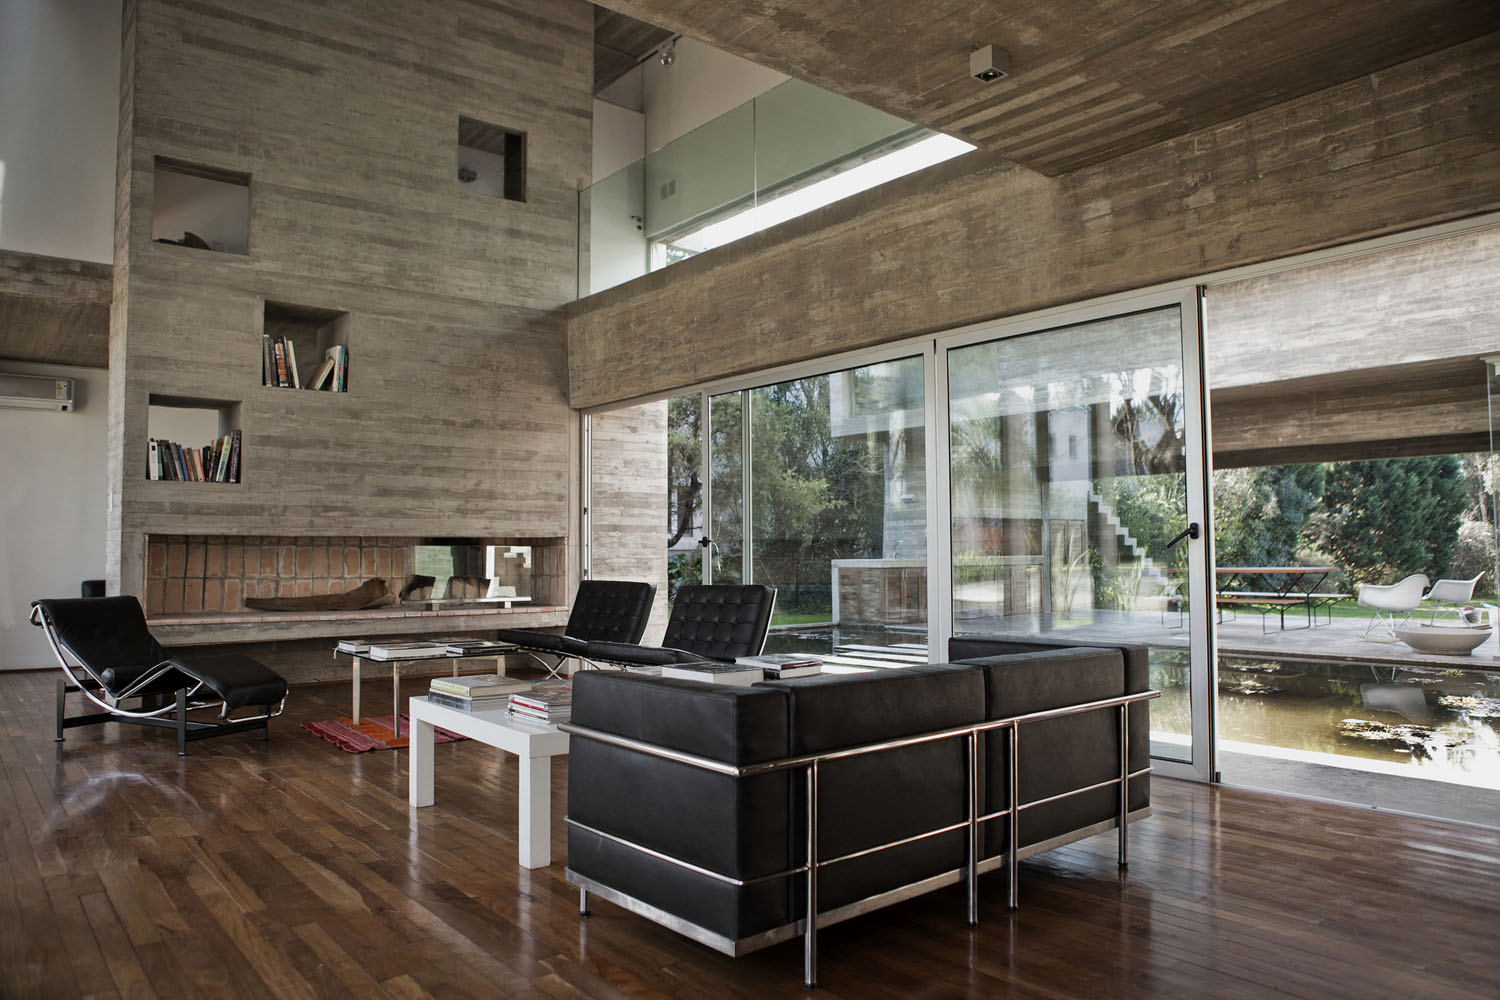 mm_Torcuato House design by BAK arquitectos_10